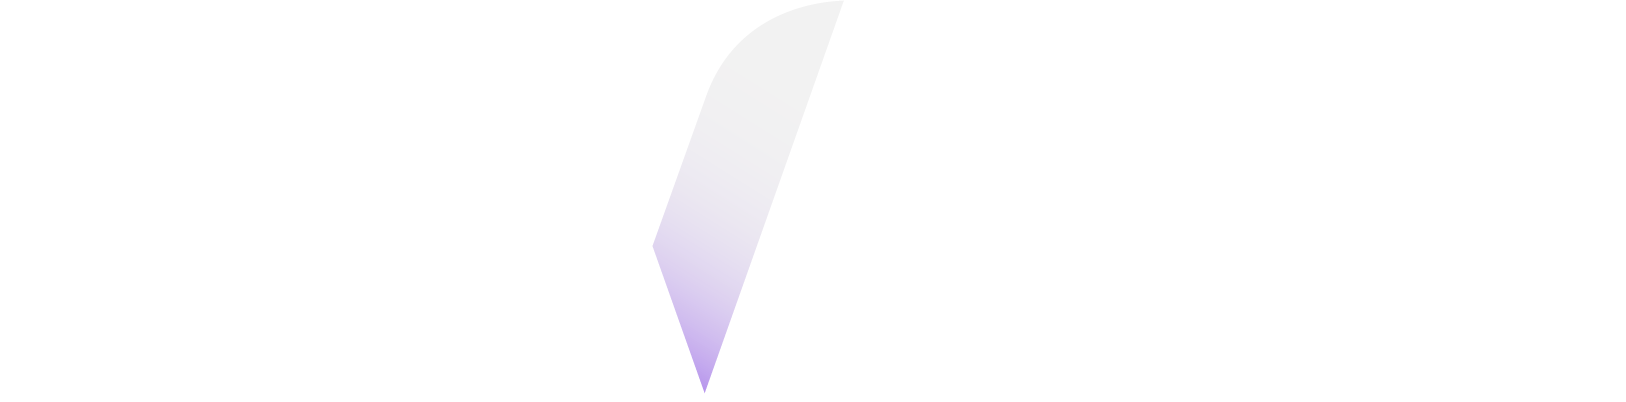 Lovo Media Labs, LLC Logo, 2019